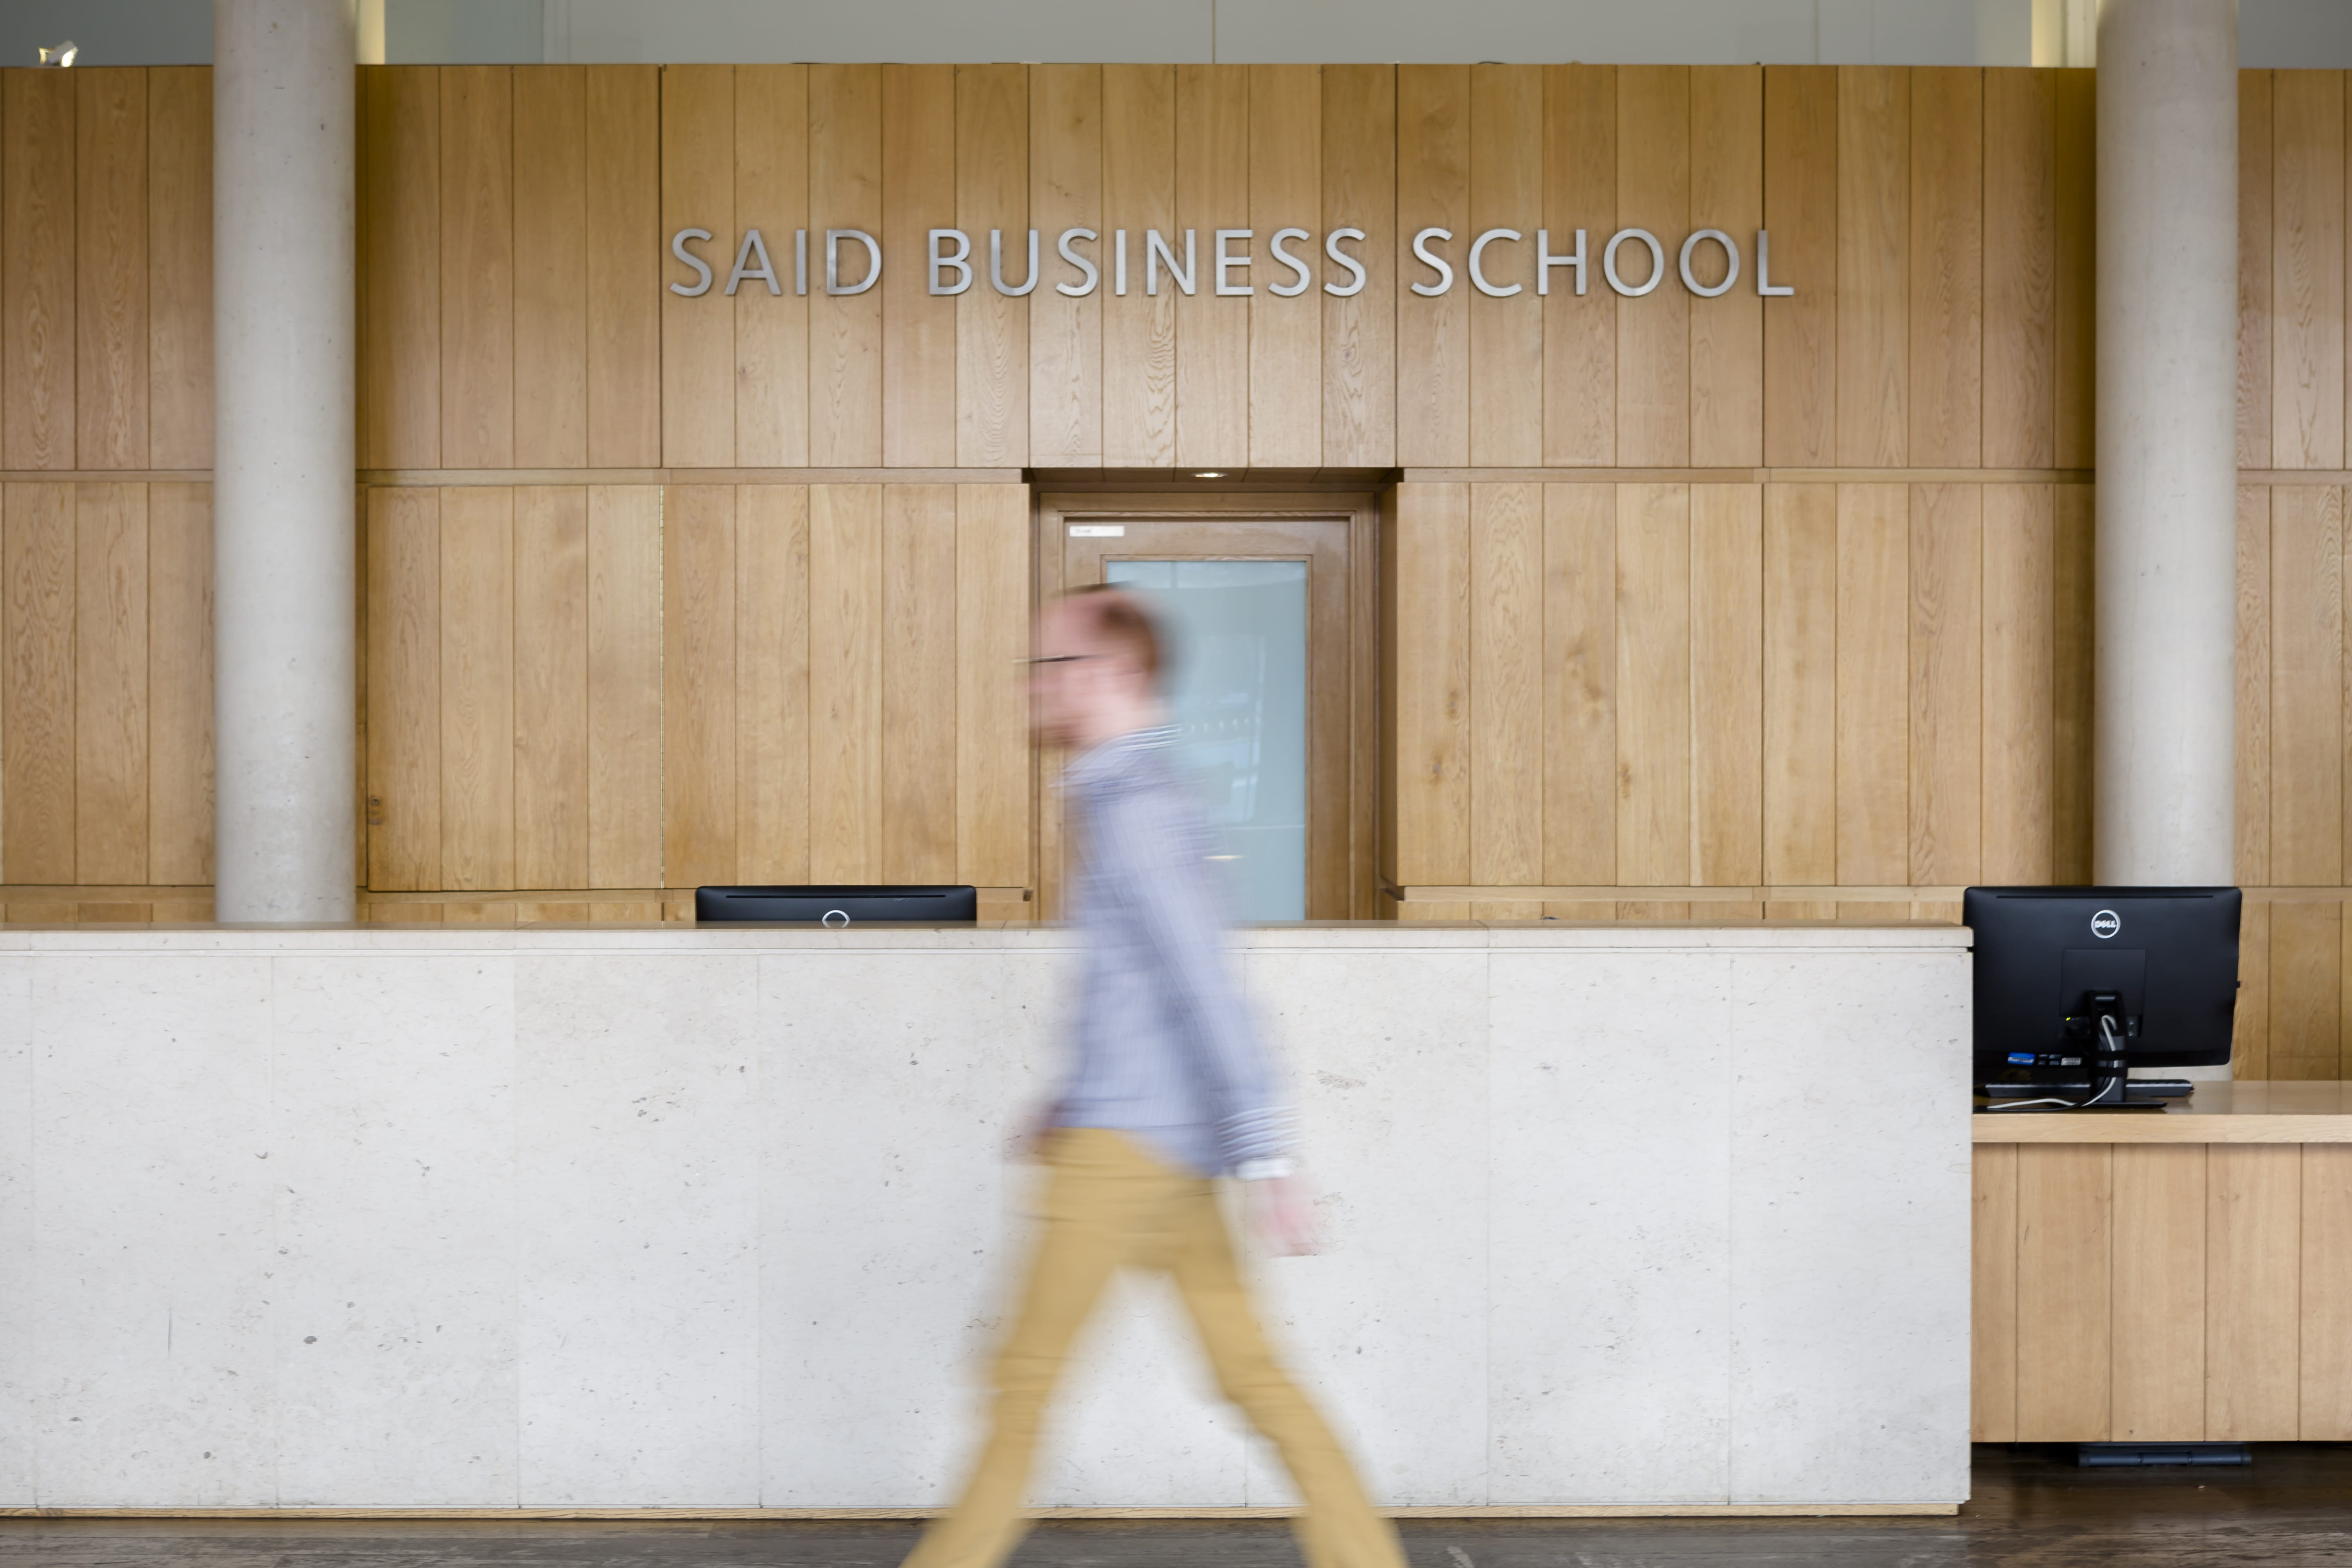 Said Business School reception